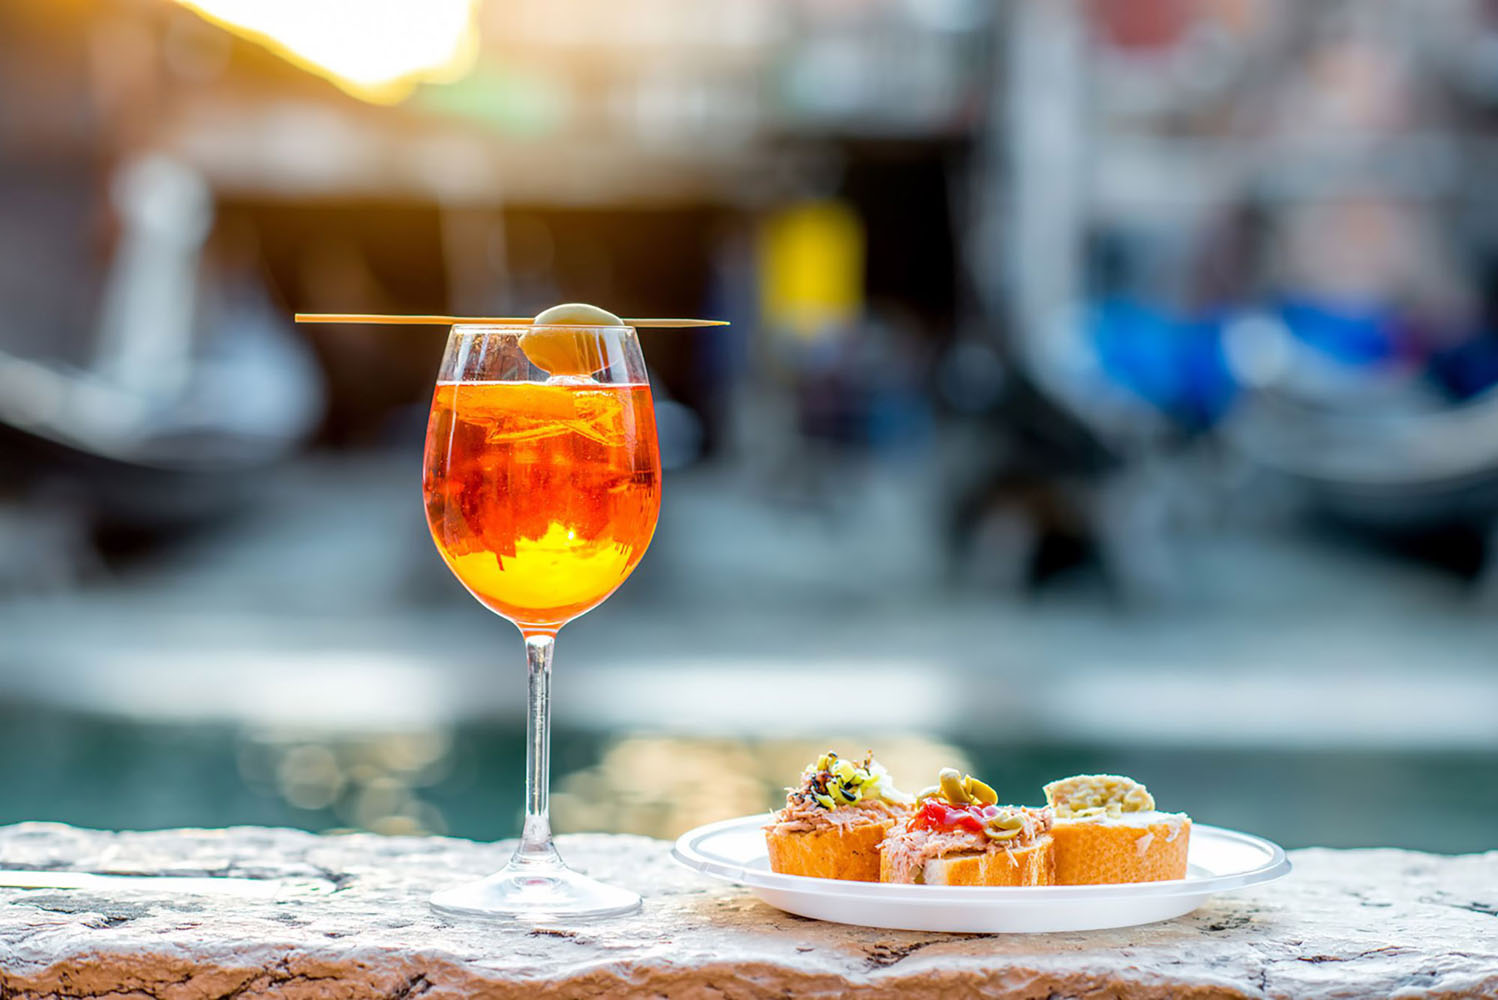 An Aperol Spritz cocktail is perched on a ledge in Venice, next to a plate of bruschetta.